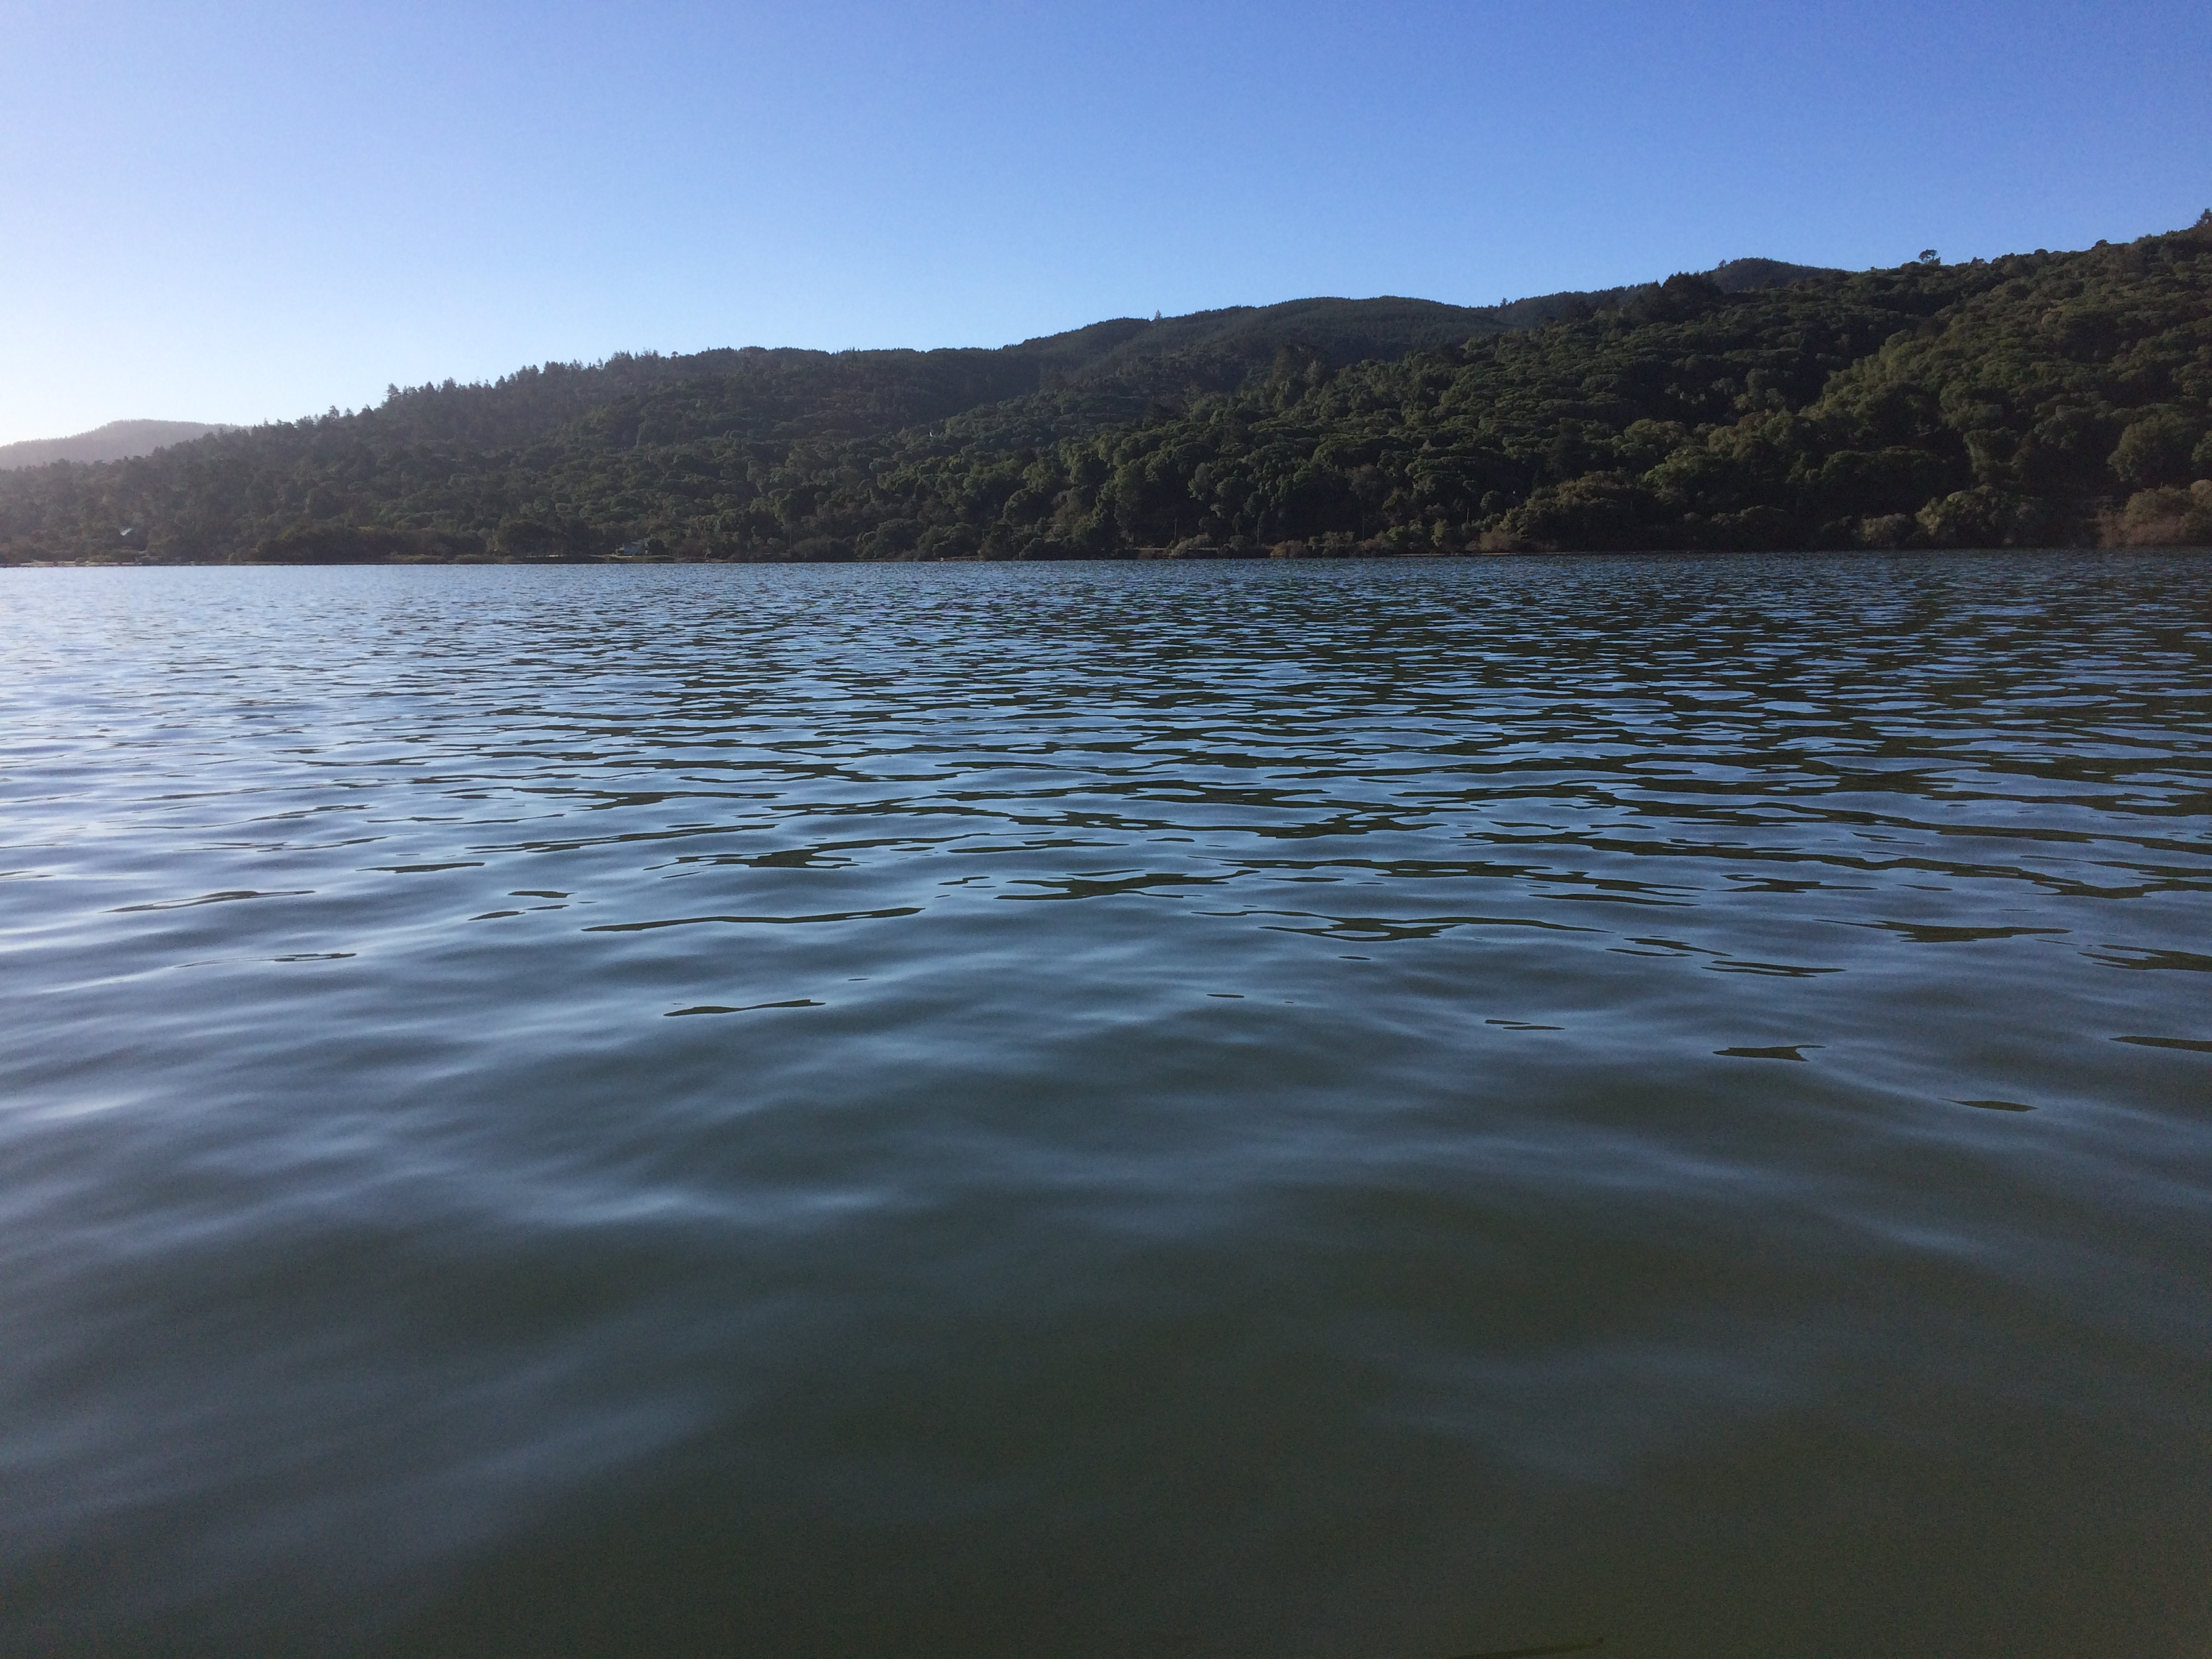 Looking west across Tomales Bay at Inverness Ridge during the King Tide of 25 Nov 2015.